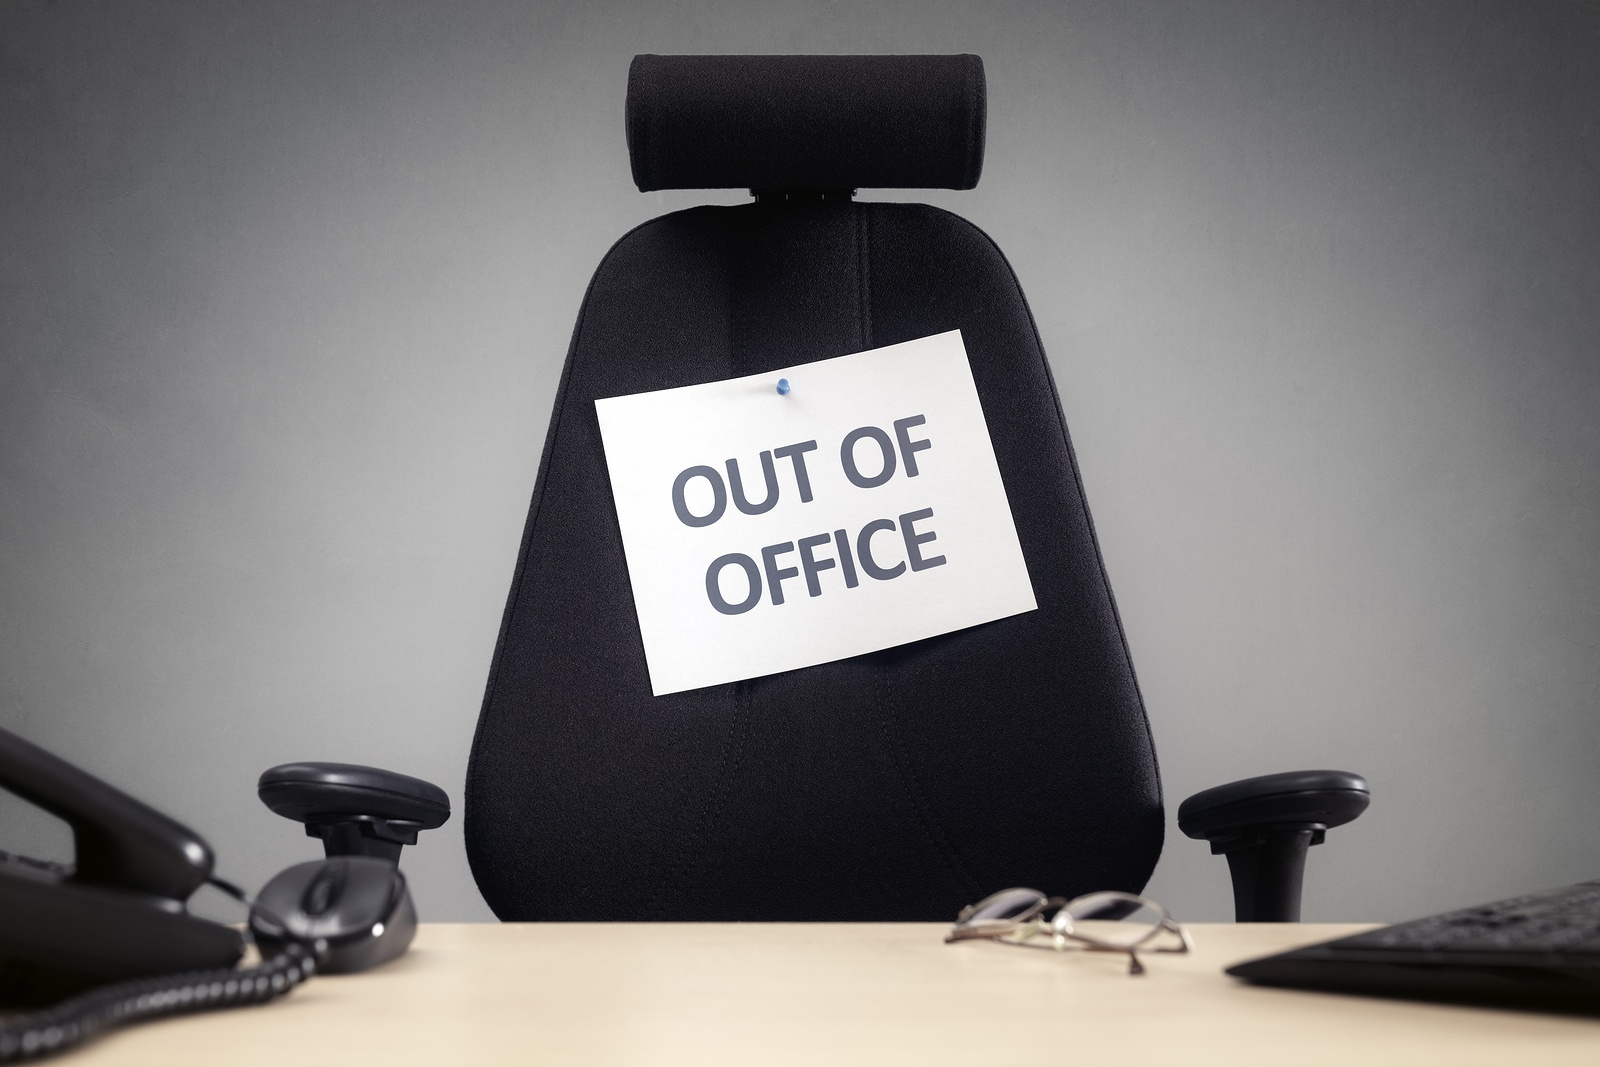 office cleaning, poor office cleaning, office cleaning and absenteeism, office illness